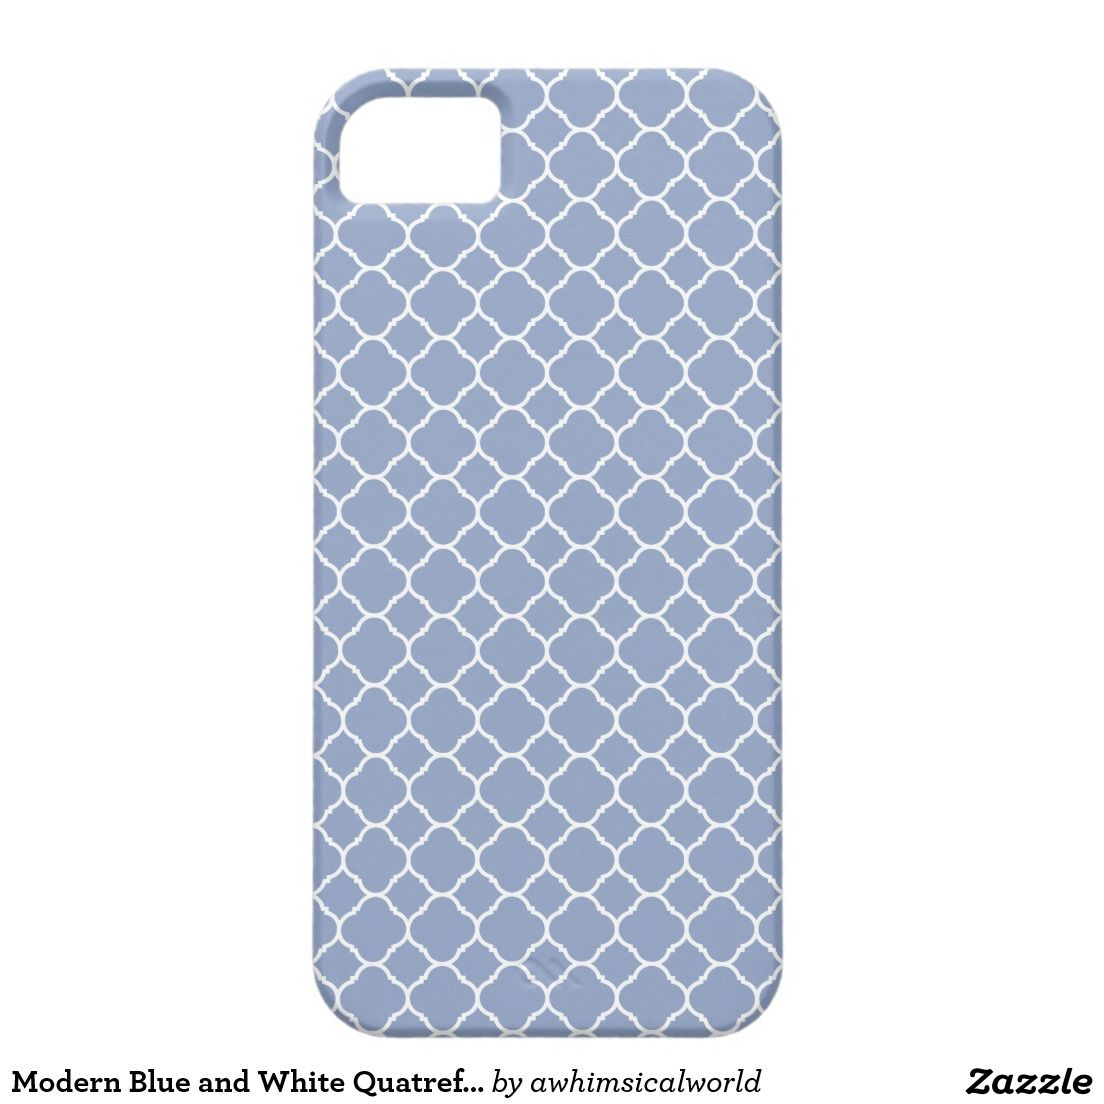 Modern Blue and White Quatrefoil Lattice Pattern iPhone Cover